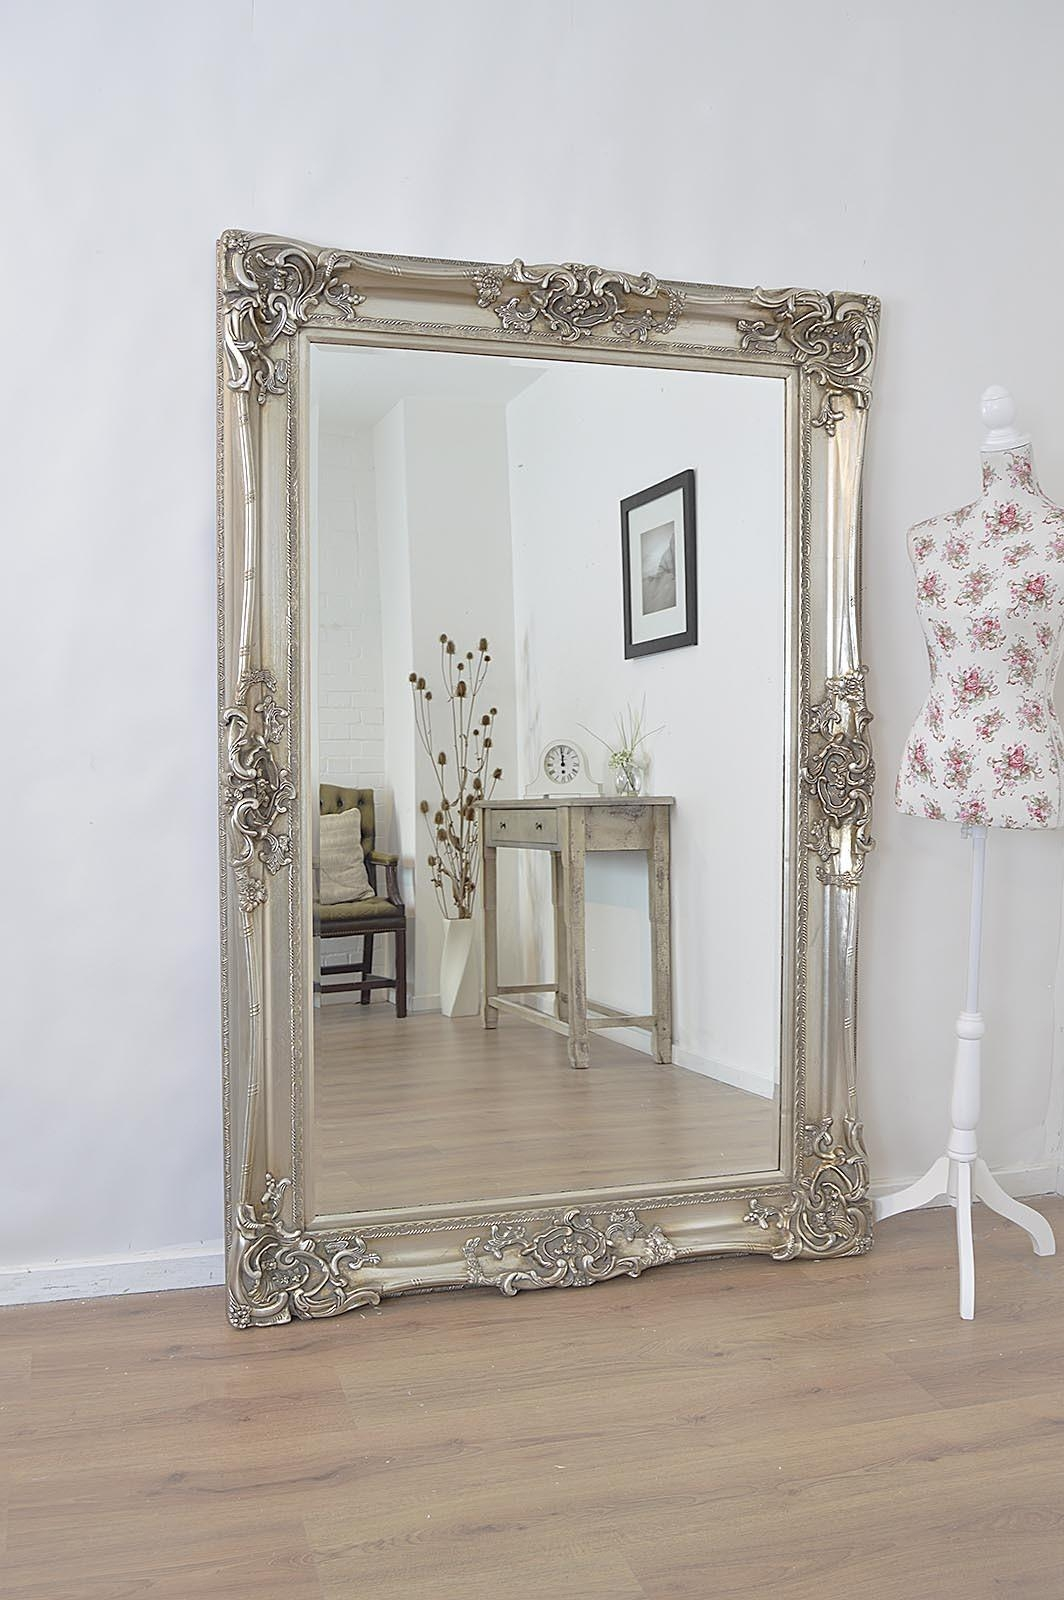 Large Antique Wall Mirror Ornate Frame Antique Ornate Wall Mirrors Pertaining To Antique Long Mirror (Image 17 of 20)